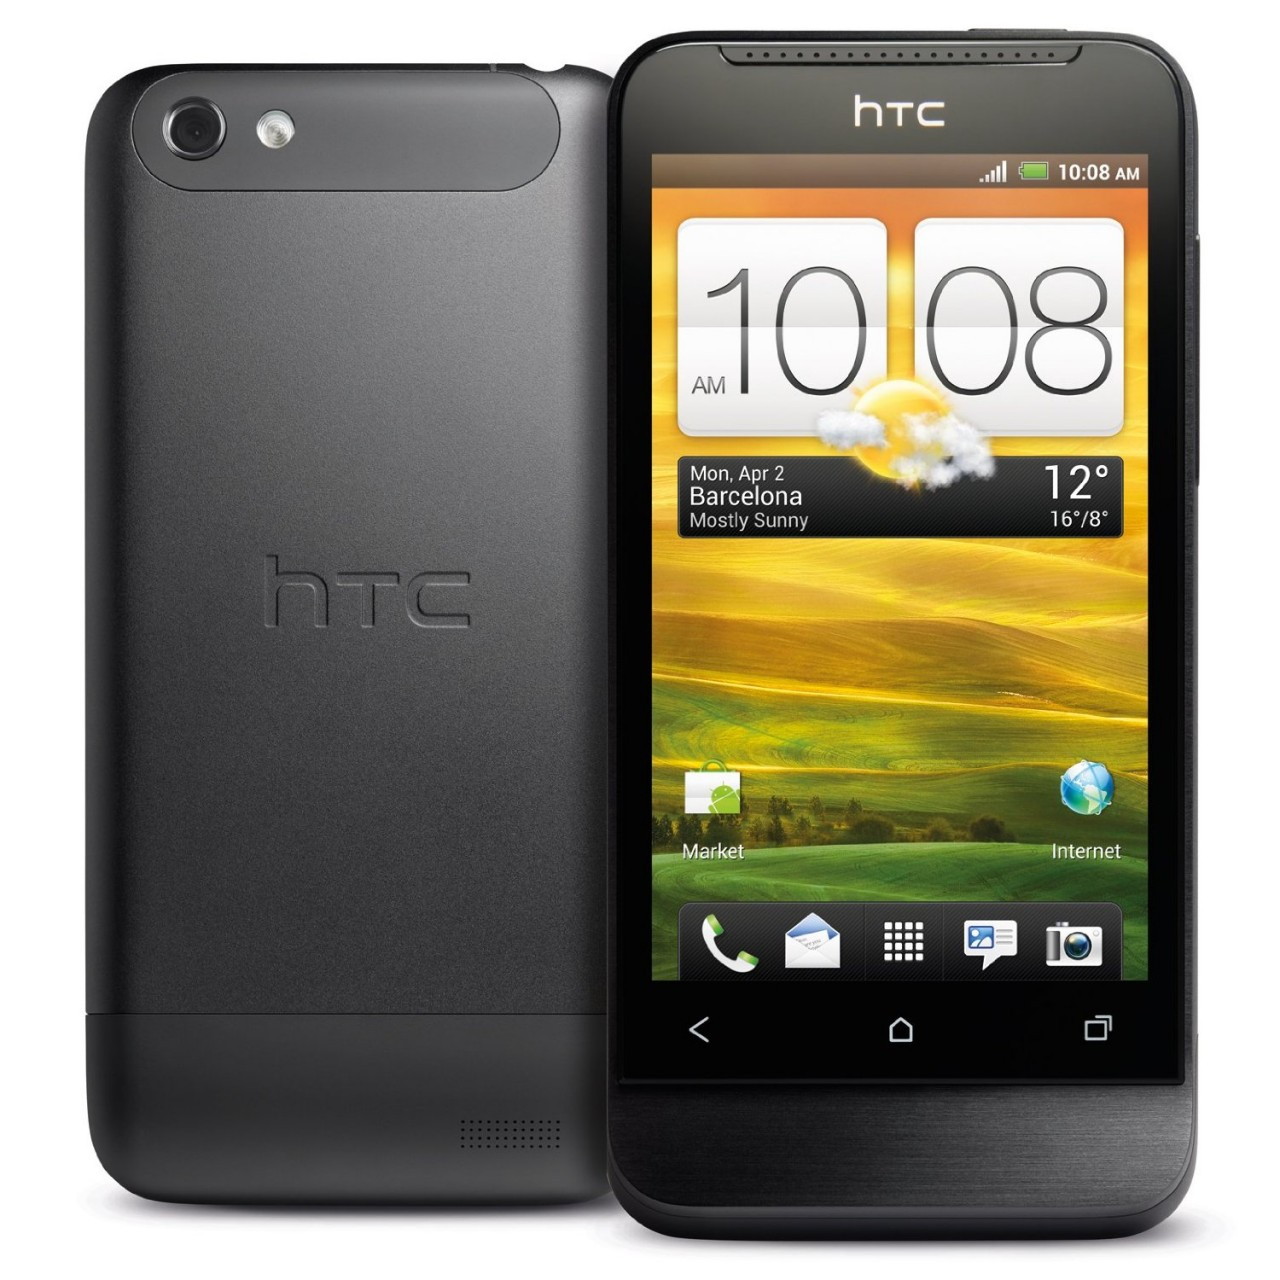 htc one v 3g 4gb black price in pakistan  homeshopping